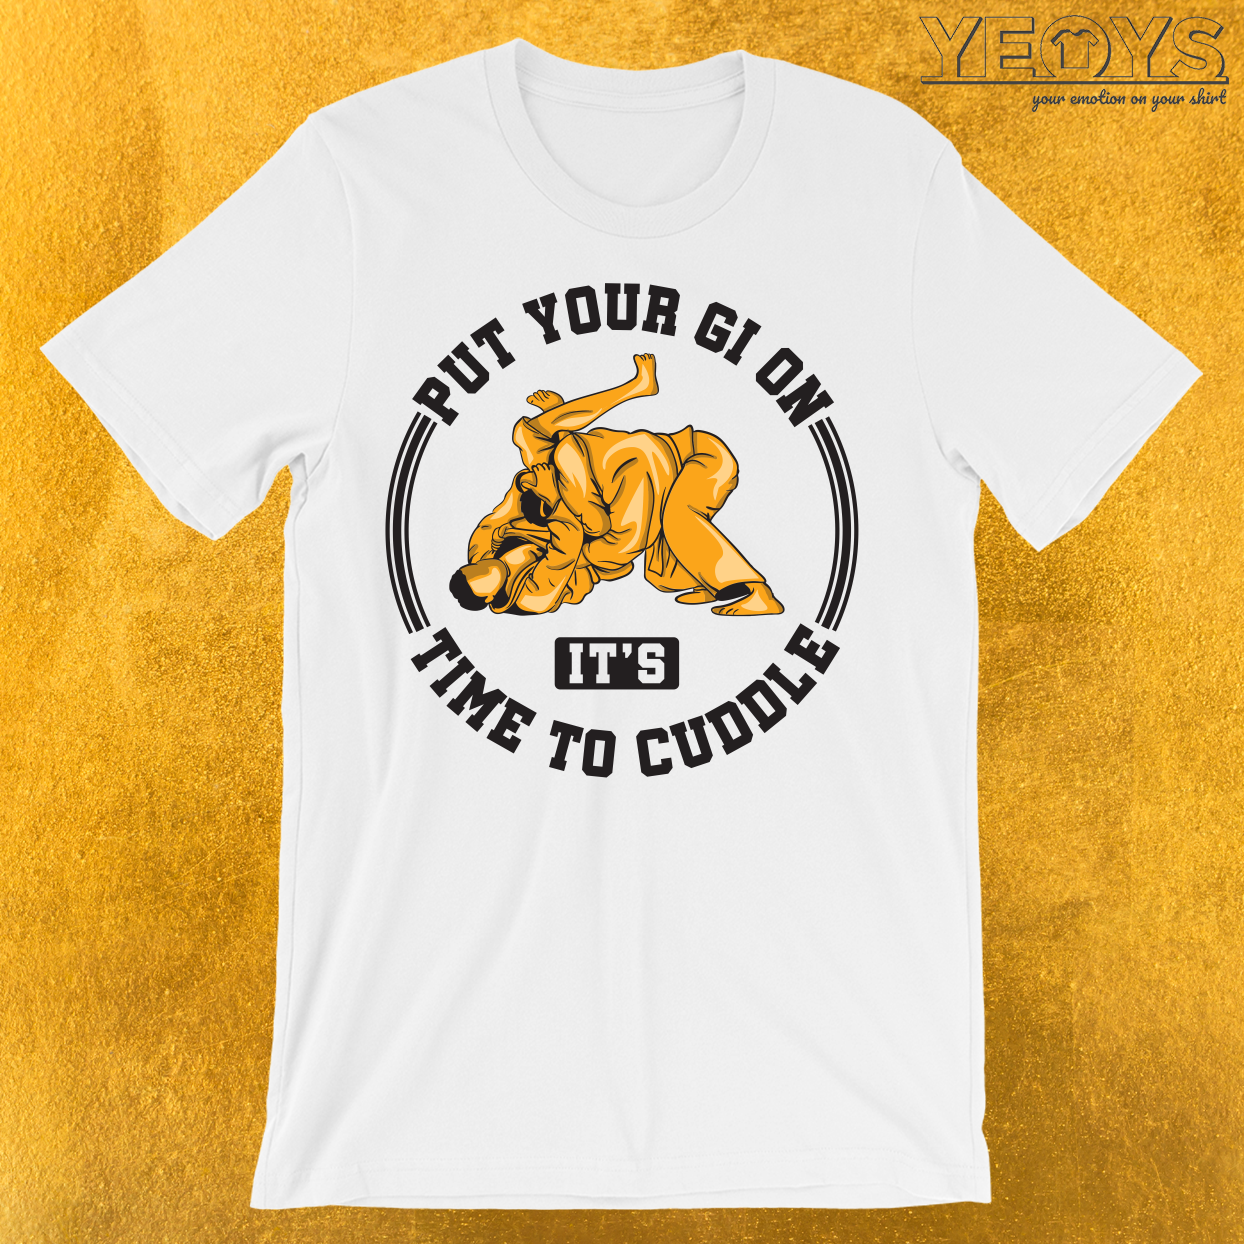 Put Your Gi On It's Time To Cuddle T-Shirt